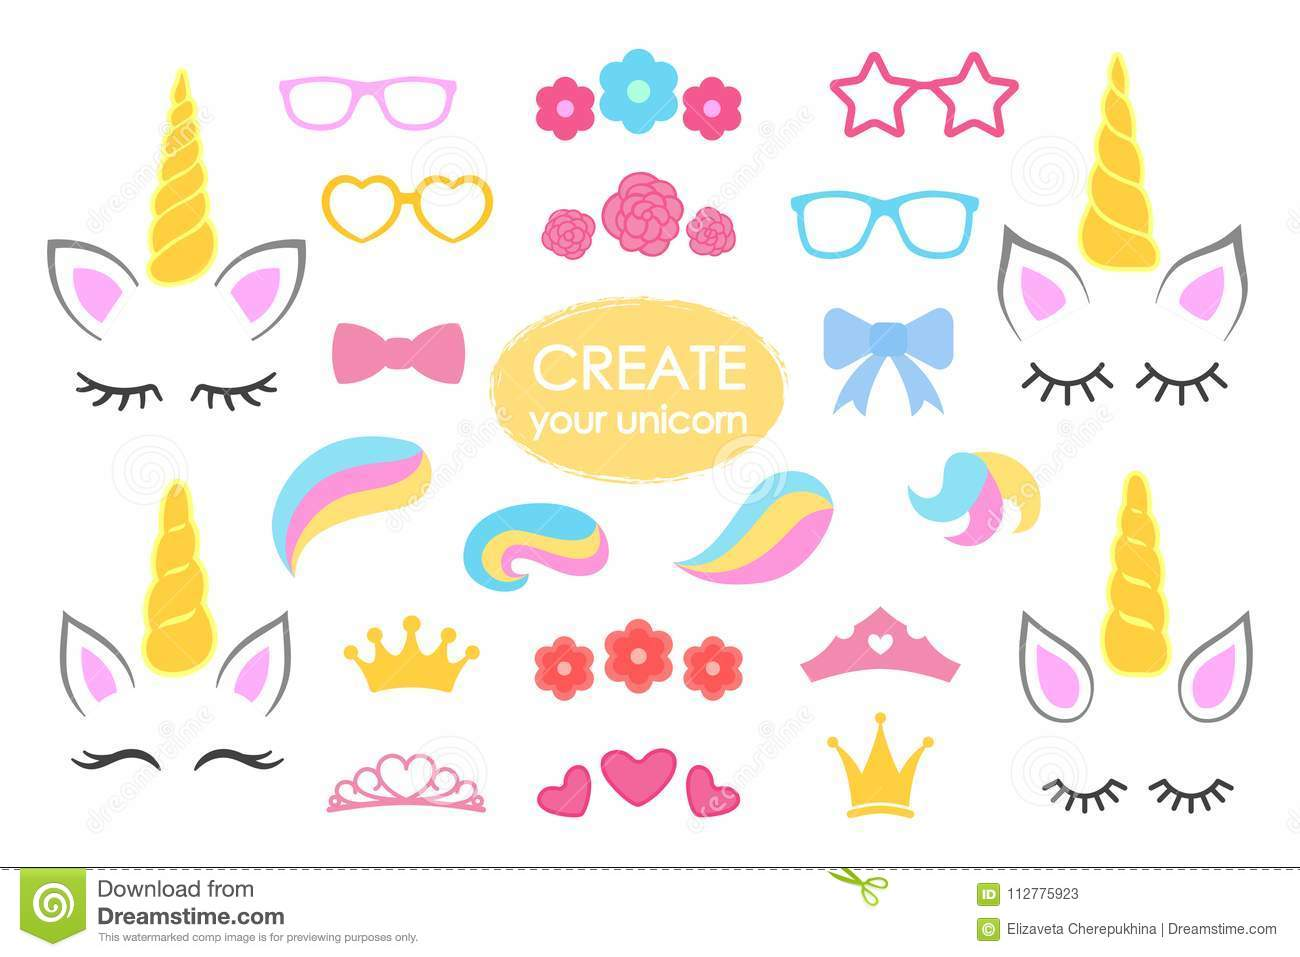 Create your own unicorn - big vector collection. Unicorn constructor. Cute unicorn face. Unicorn details - Horhs, eyelashes, ears,